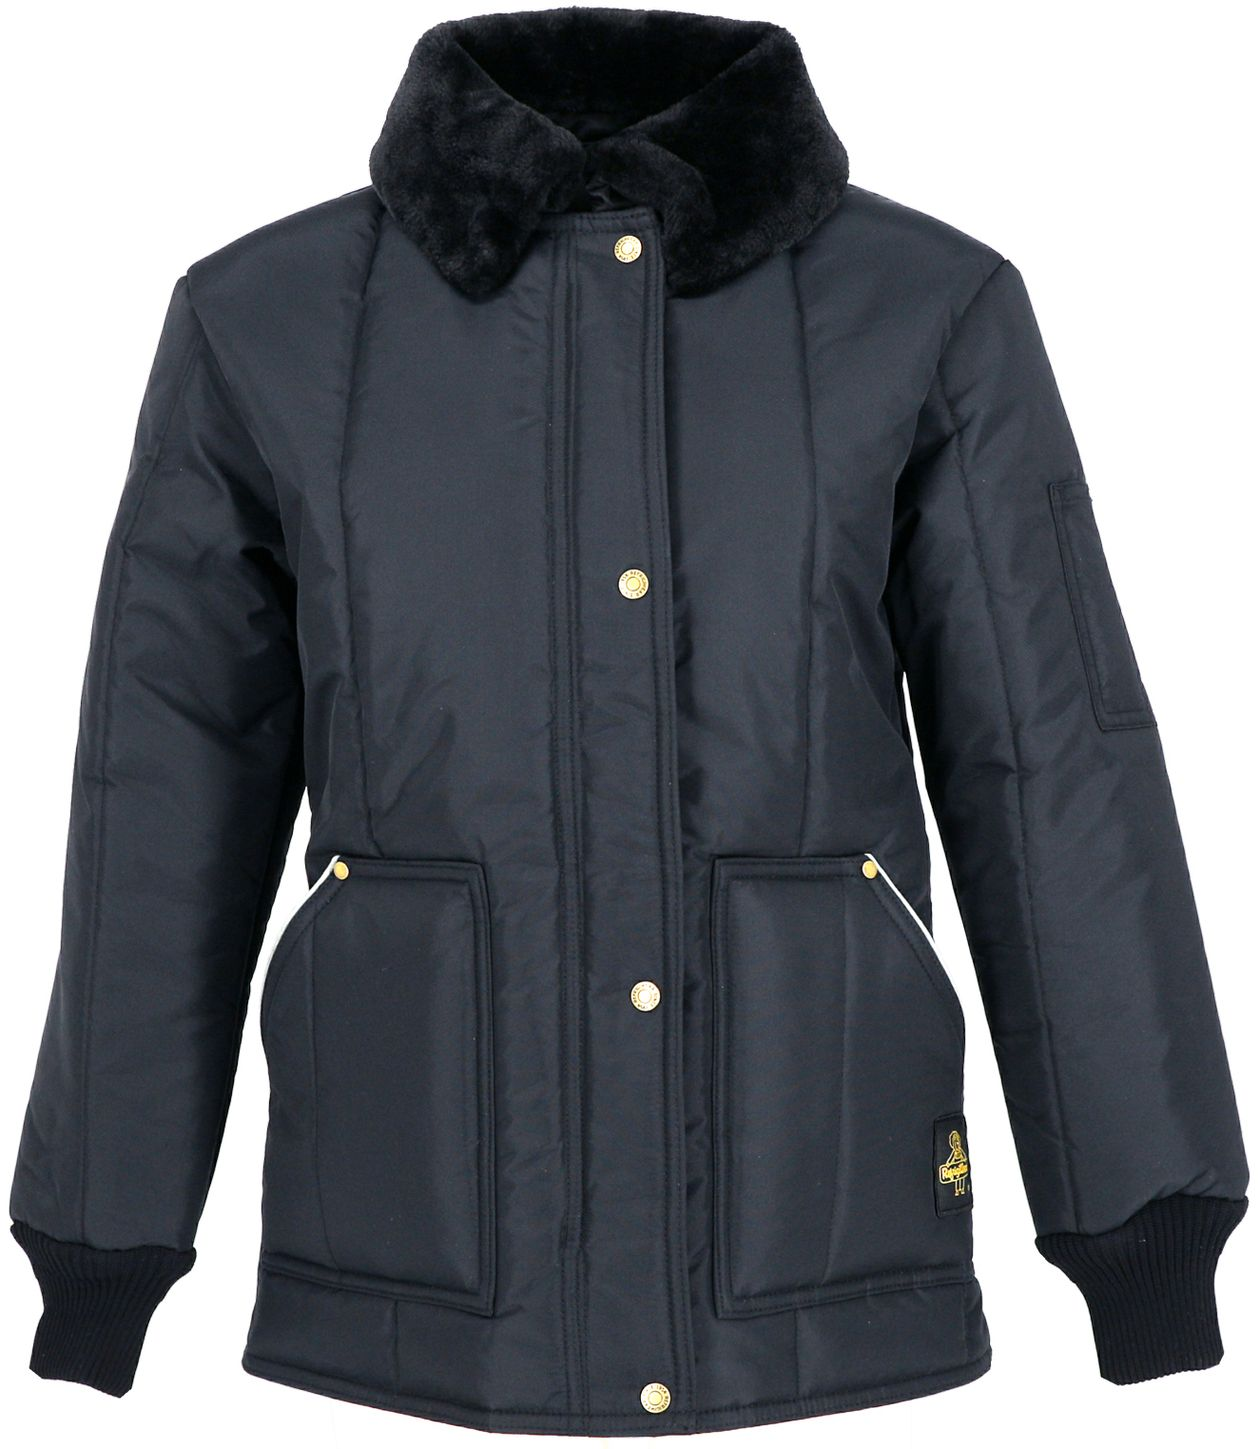 RefrigiWear 0323 Iron-Tuff Womens Cold Weather Work Coat Front